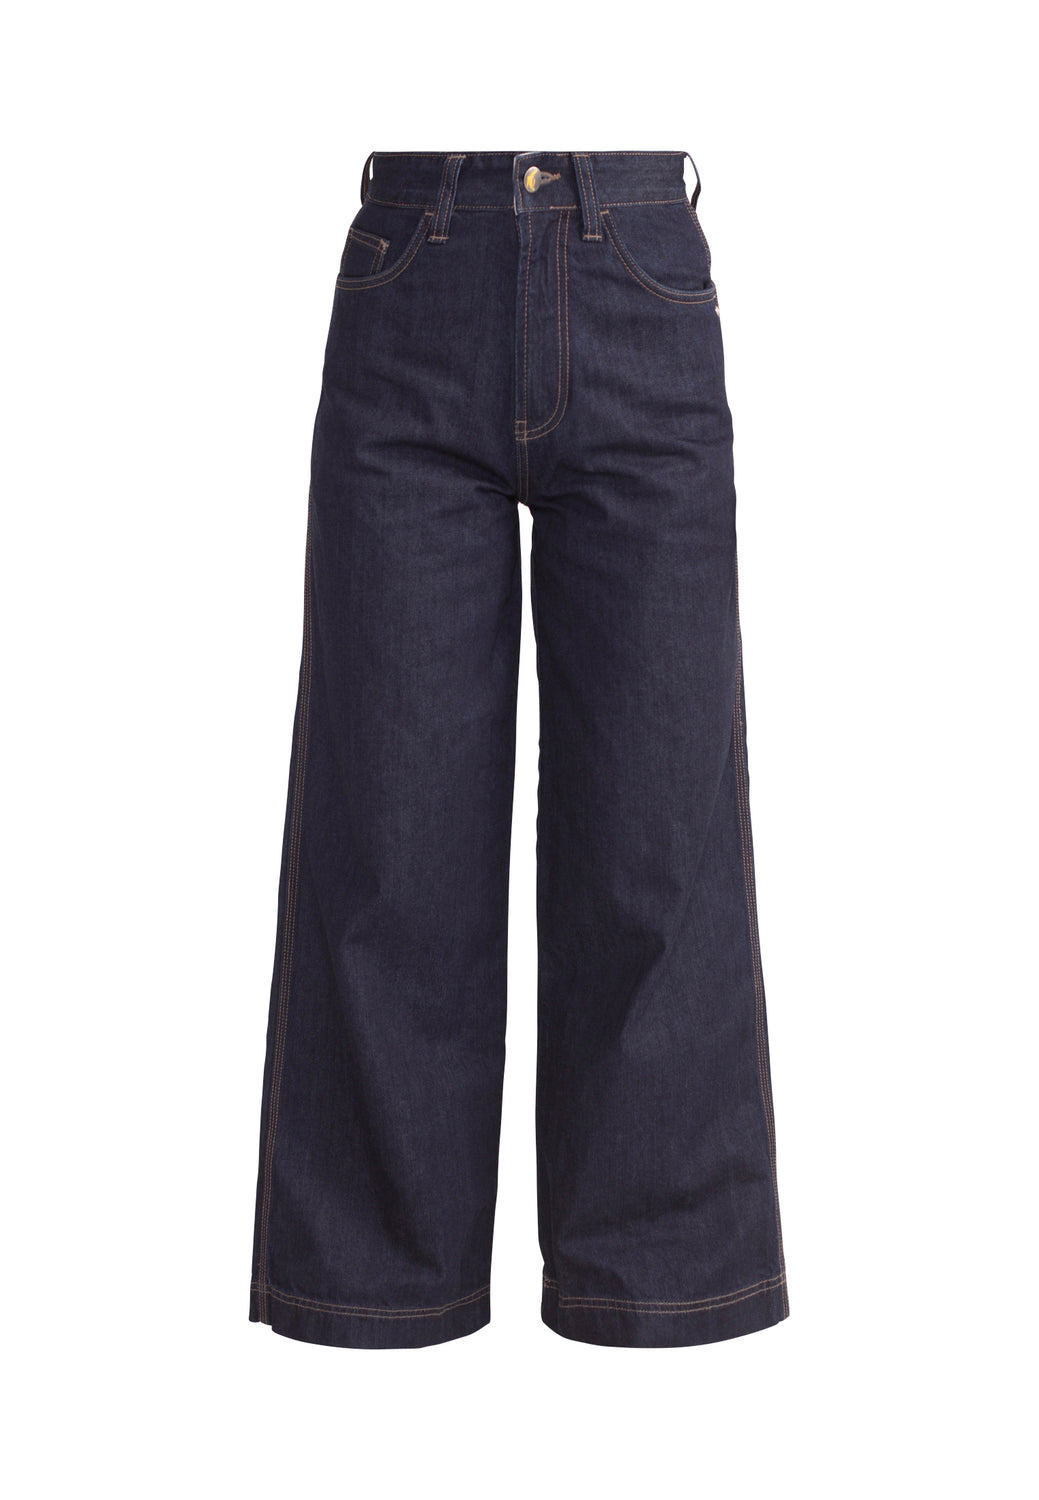 WIDE LEG // Organic Wide Leg Jeans in Rinse Wash - Monkee Genes Organic Jeans Denim - Women's Wide Fit Monkee Genes Official  Monkee Genes Official